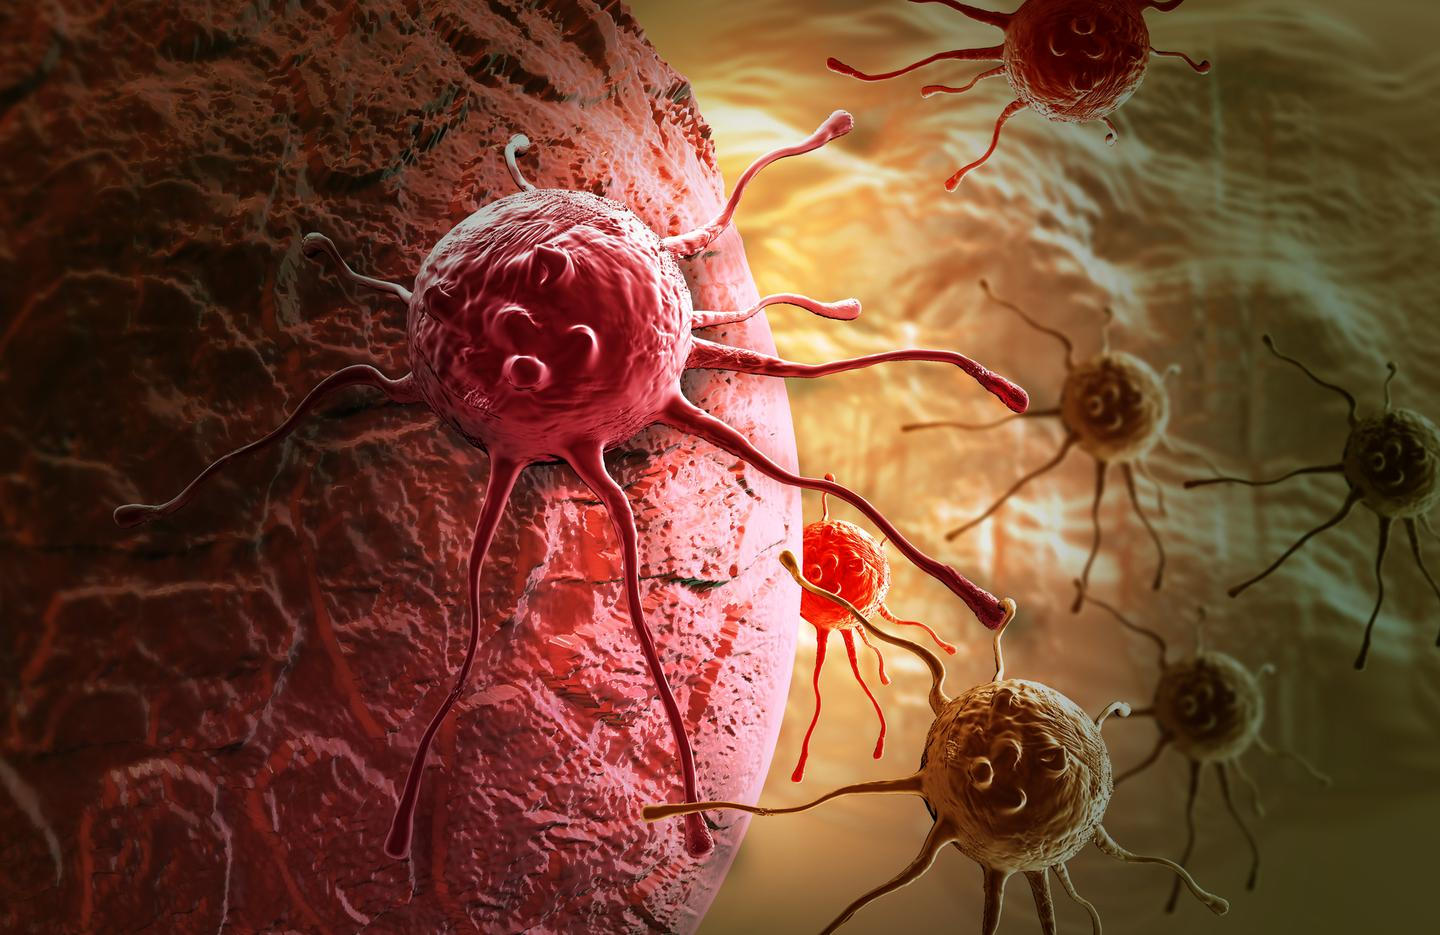 A vaccine induces the body into producing antibodies that help immune cells detect and kill cancer cells